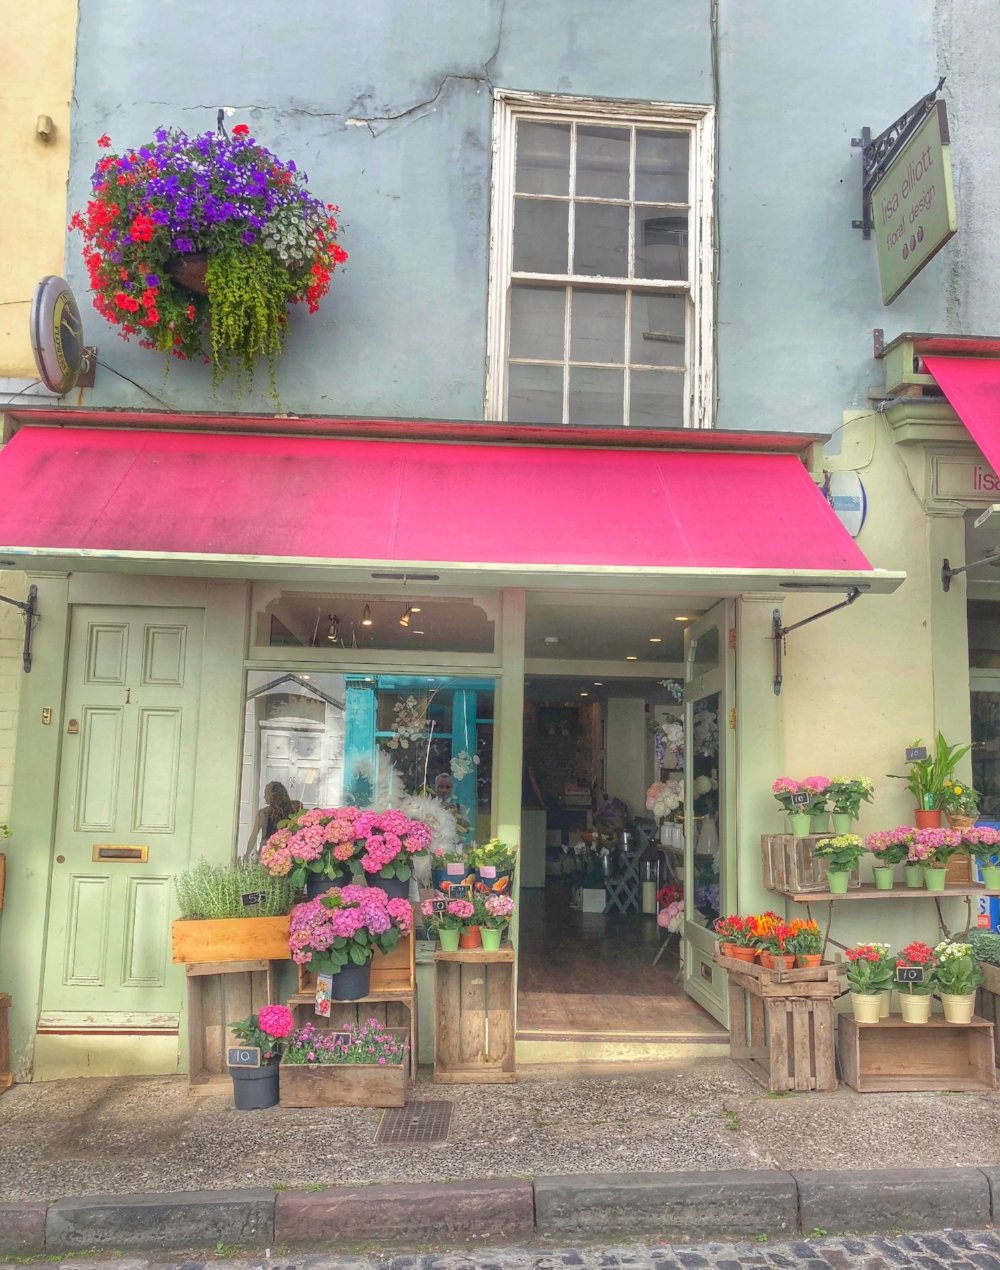 Amazing flower shop in Clifton Village. Just lovely.